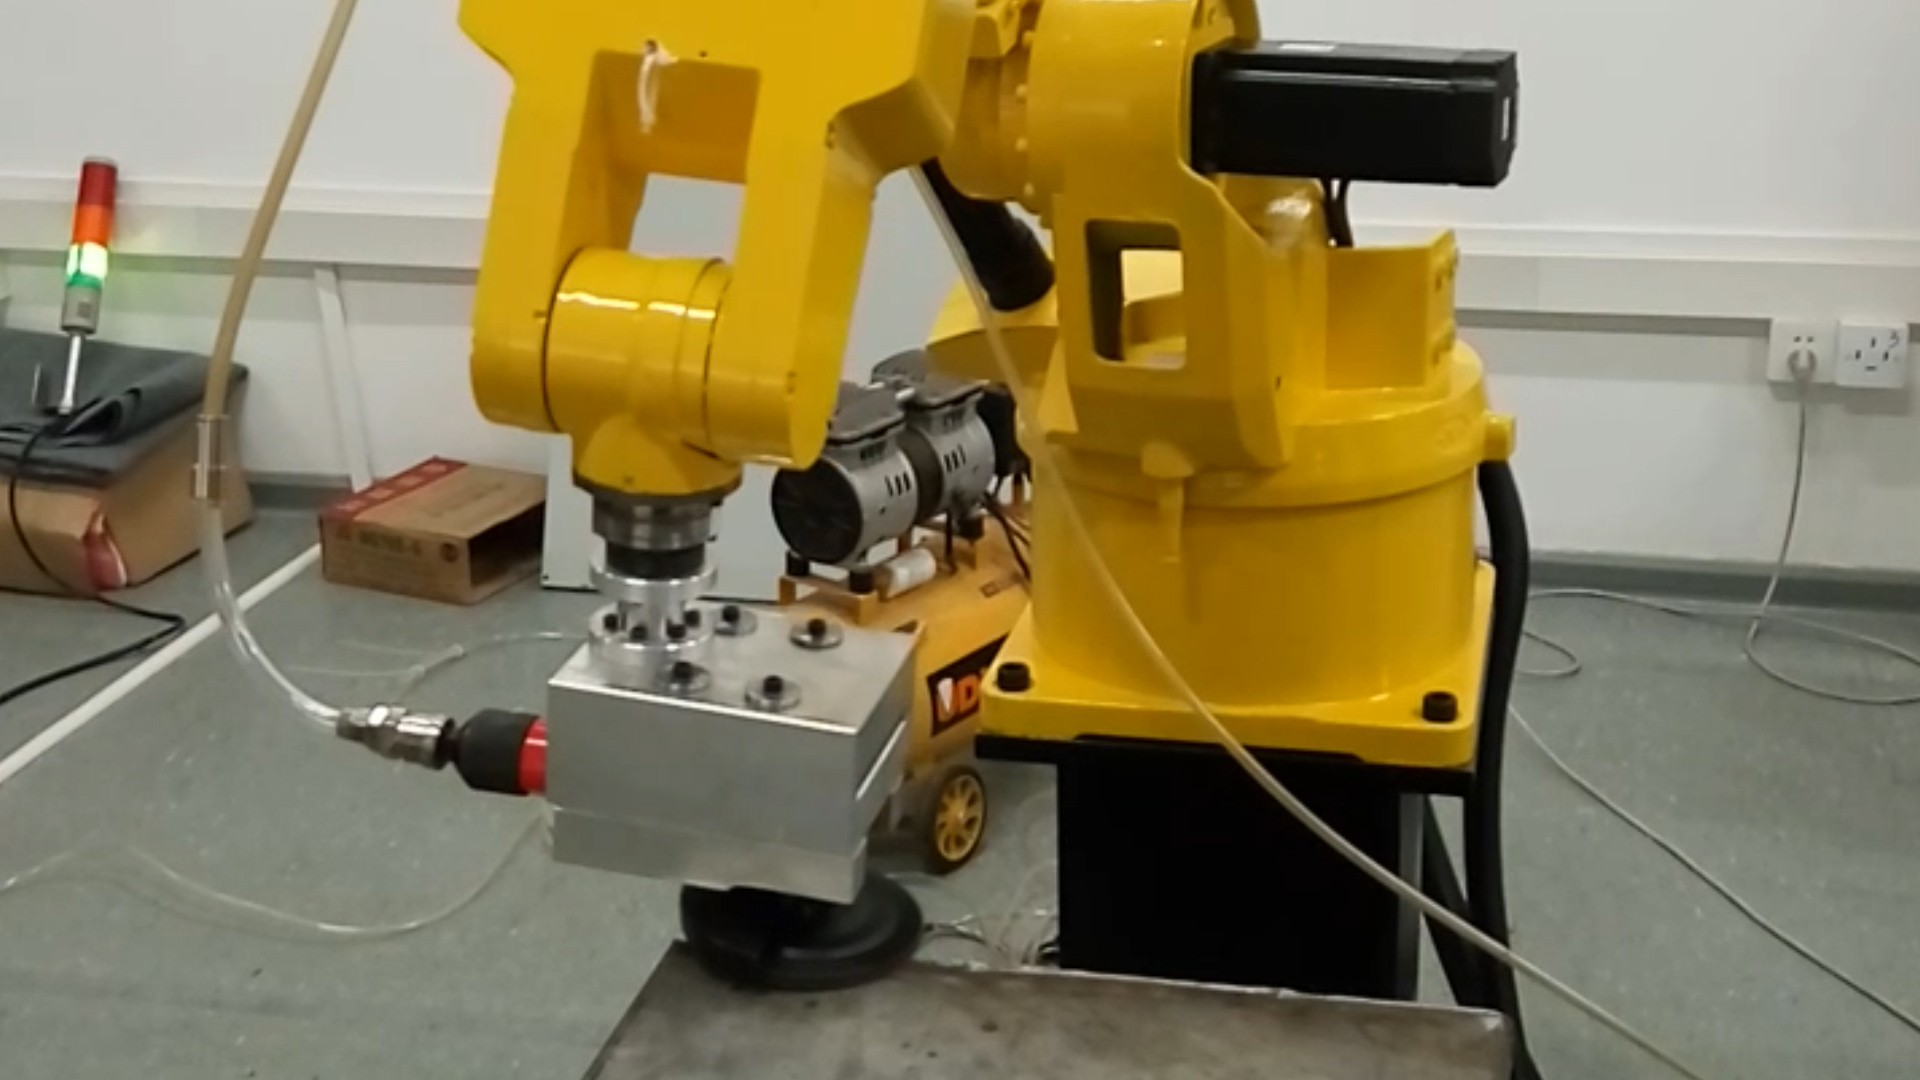 Turing Robot Welding Scar Polishing